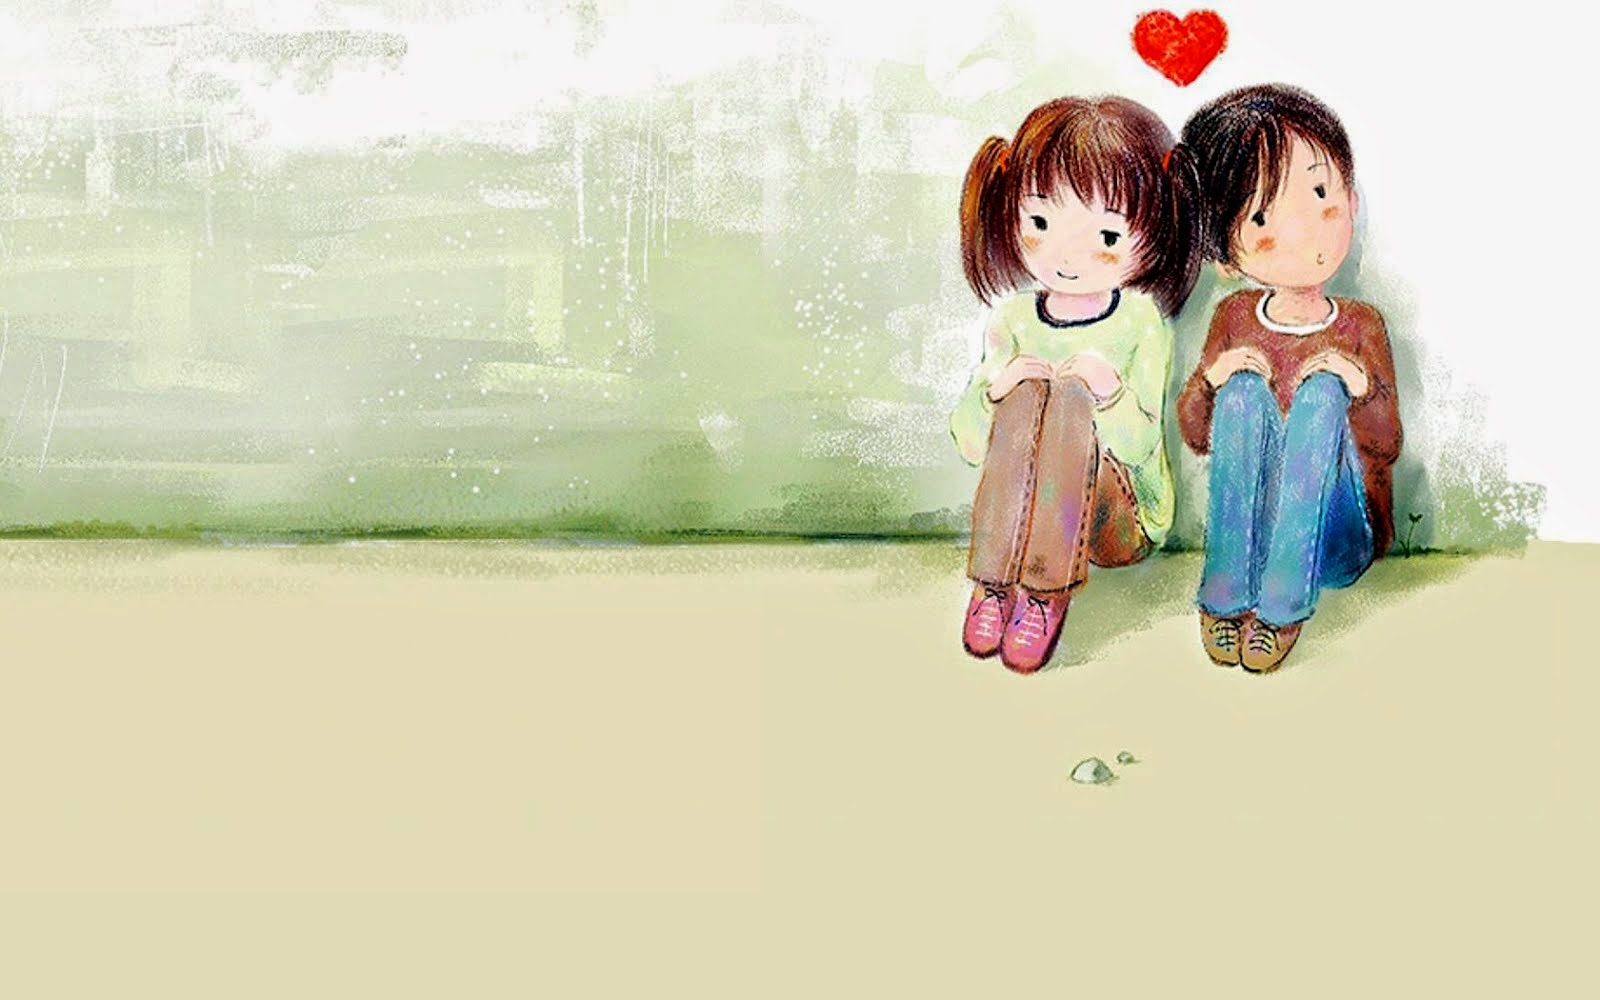 Love couple Hd Wallpaper For Smartphone : cute Little cartoon couple In Love HD Wallpaper Best Love HD Wallpapers